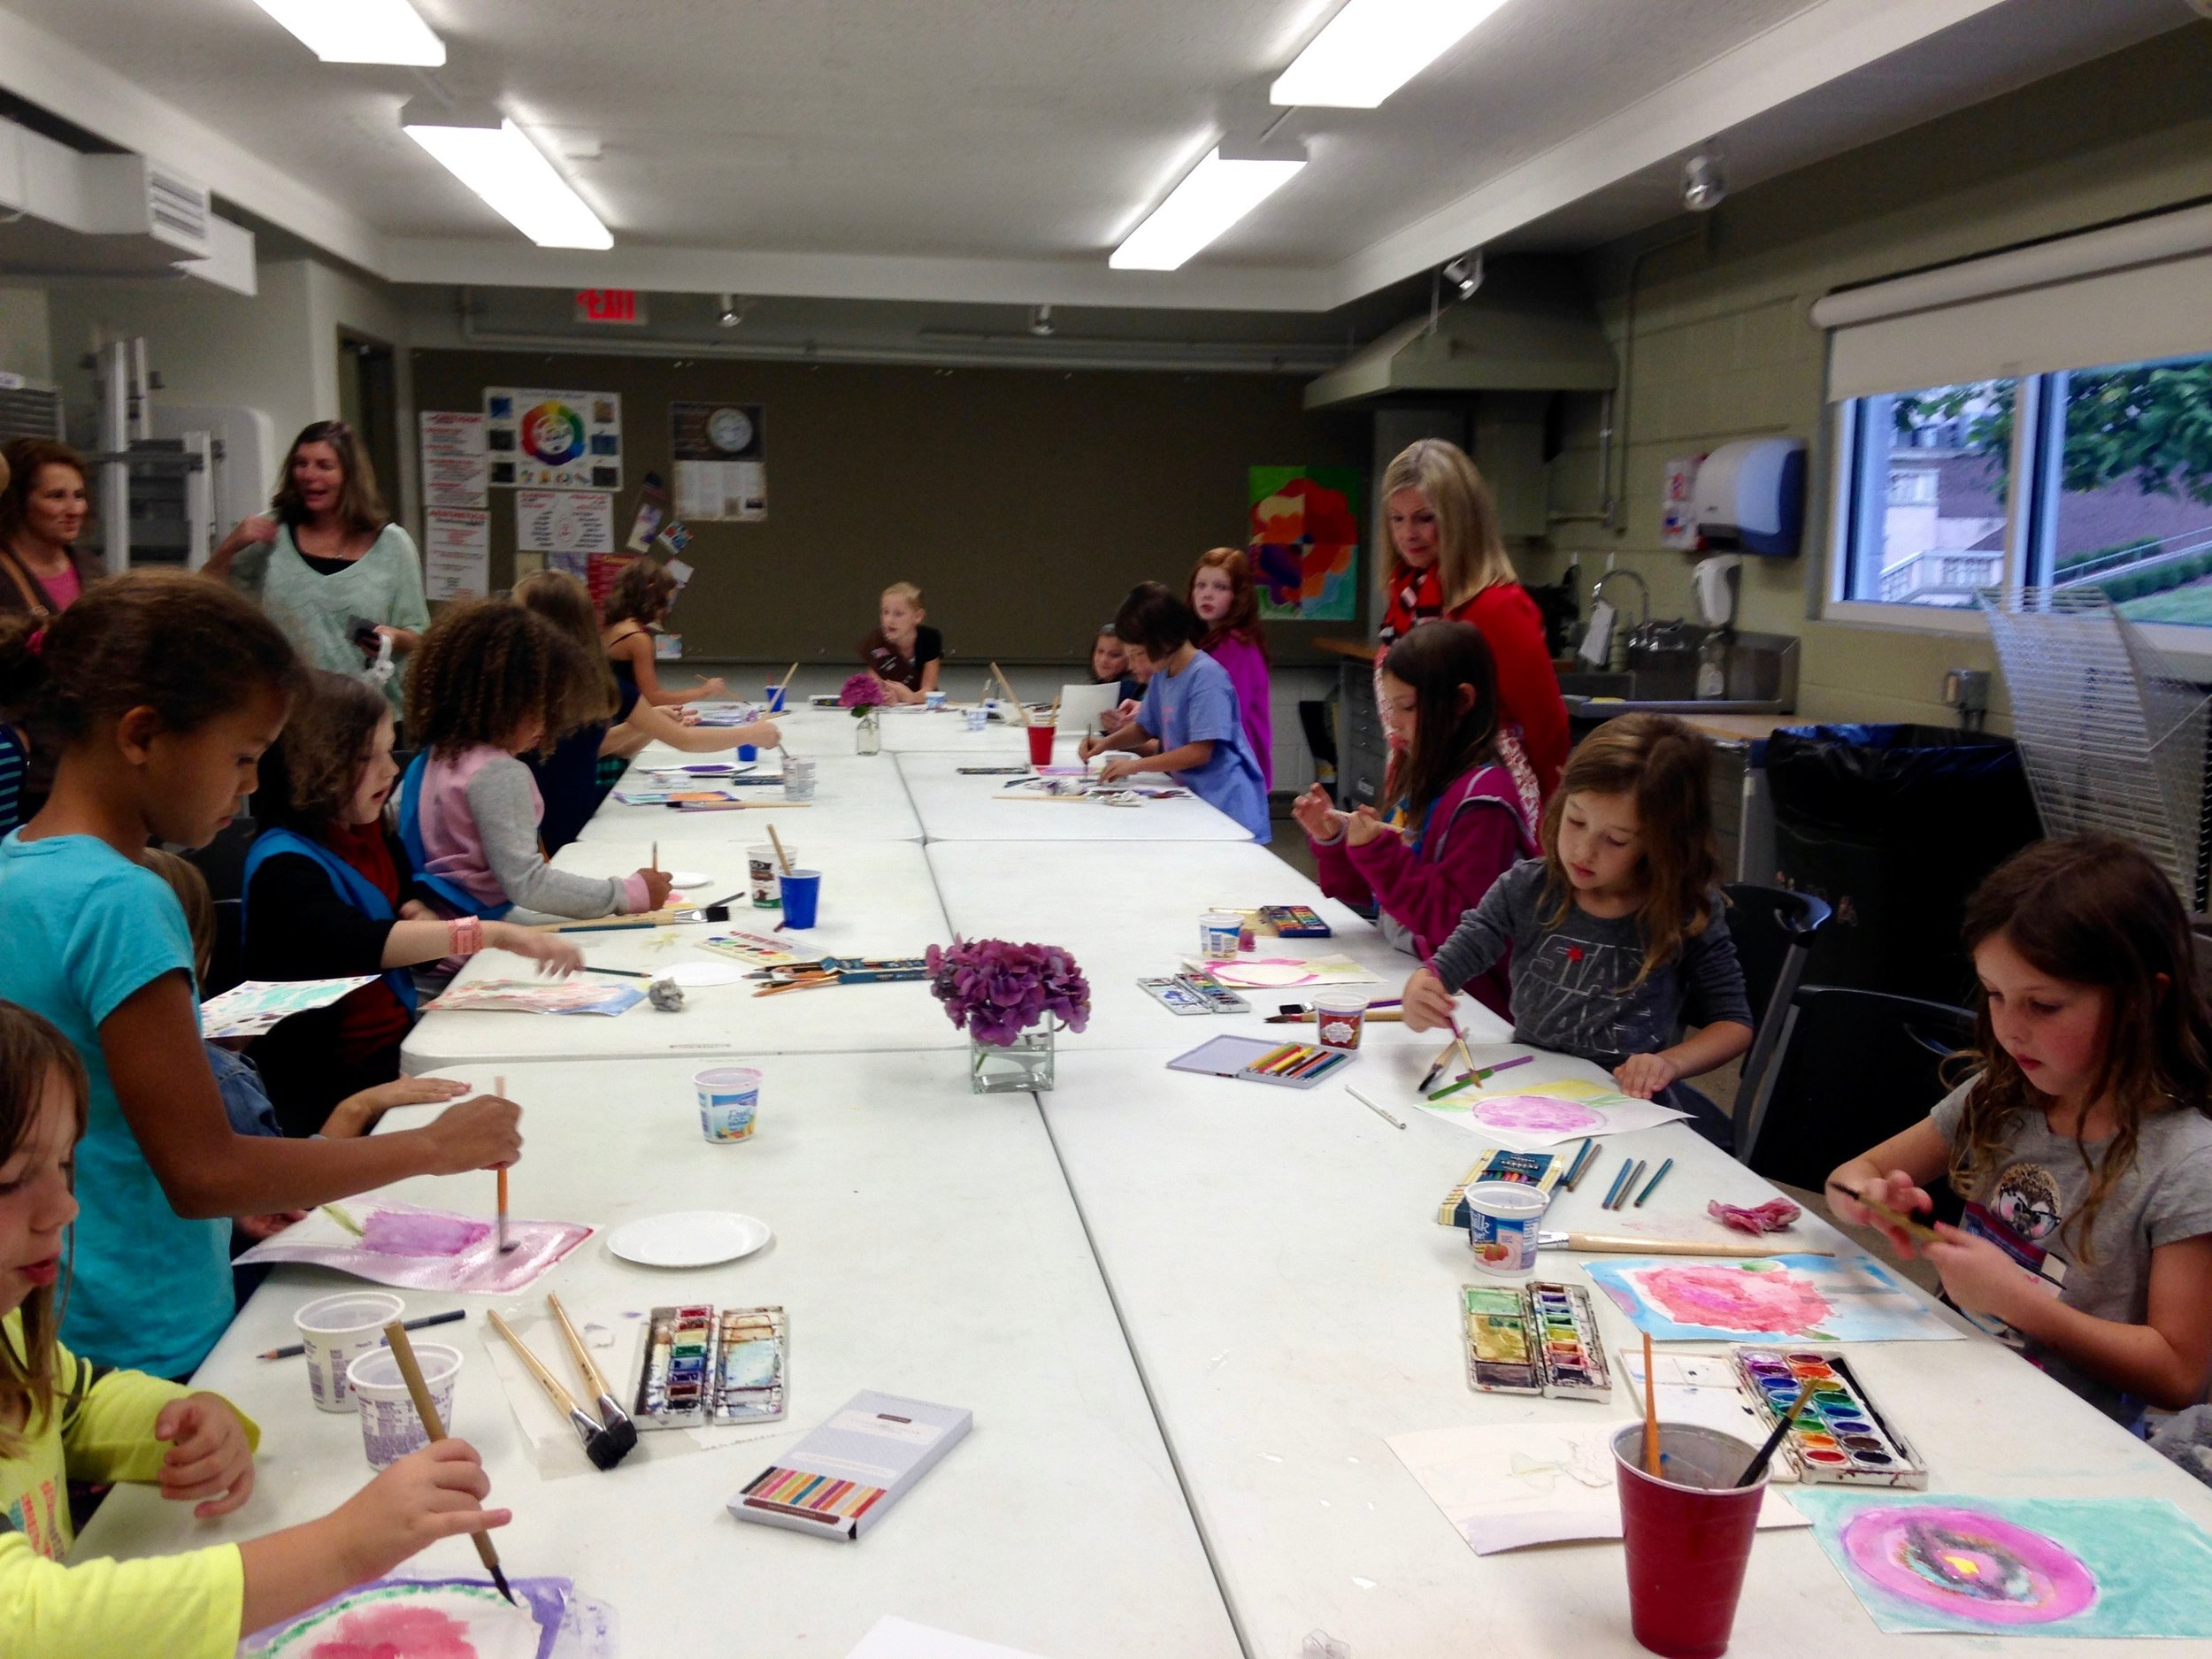 A brownie troupe visits the Art Museum.  After a docent led tour, they are engaged in a painting project.